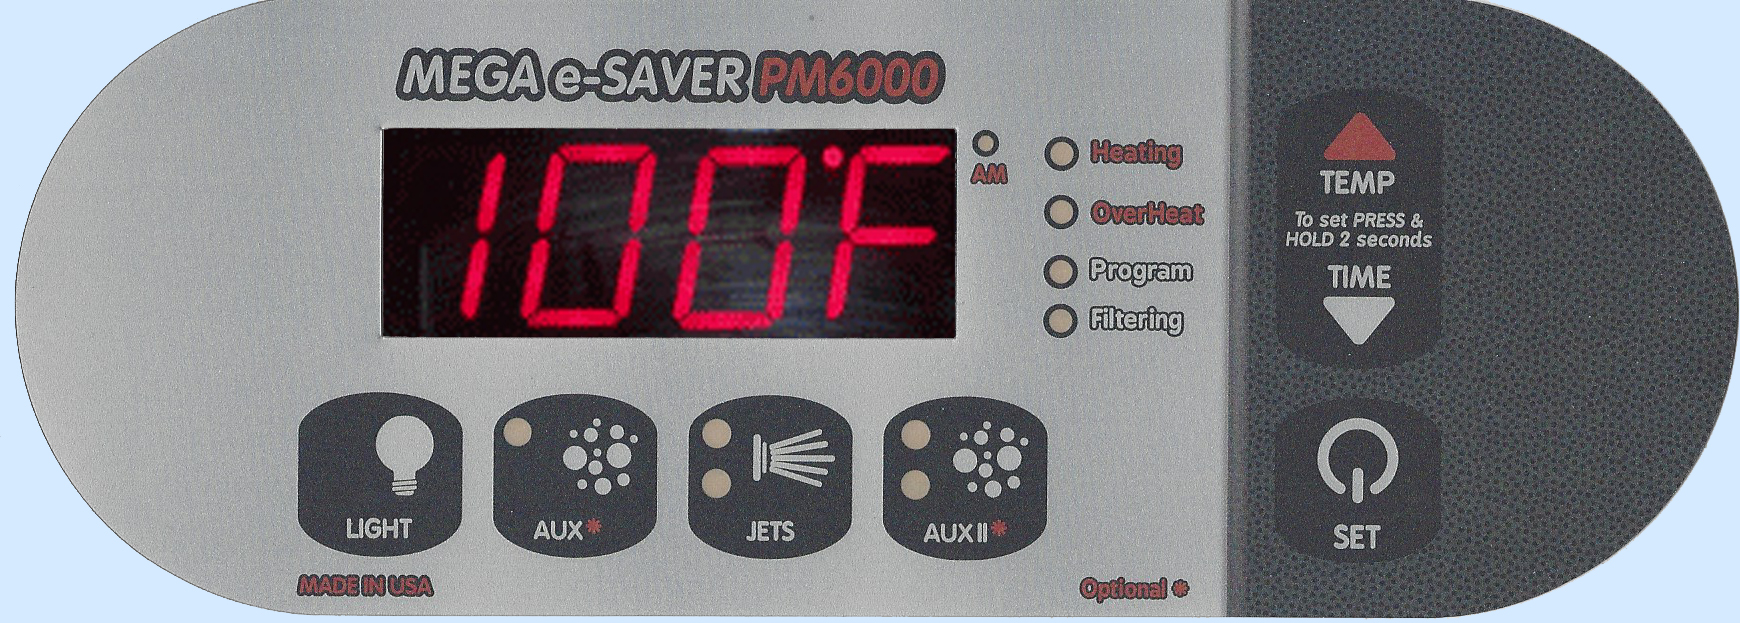 pm6000 digital spa side control